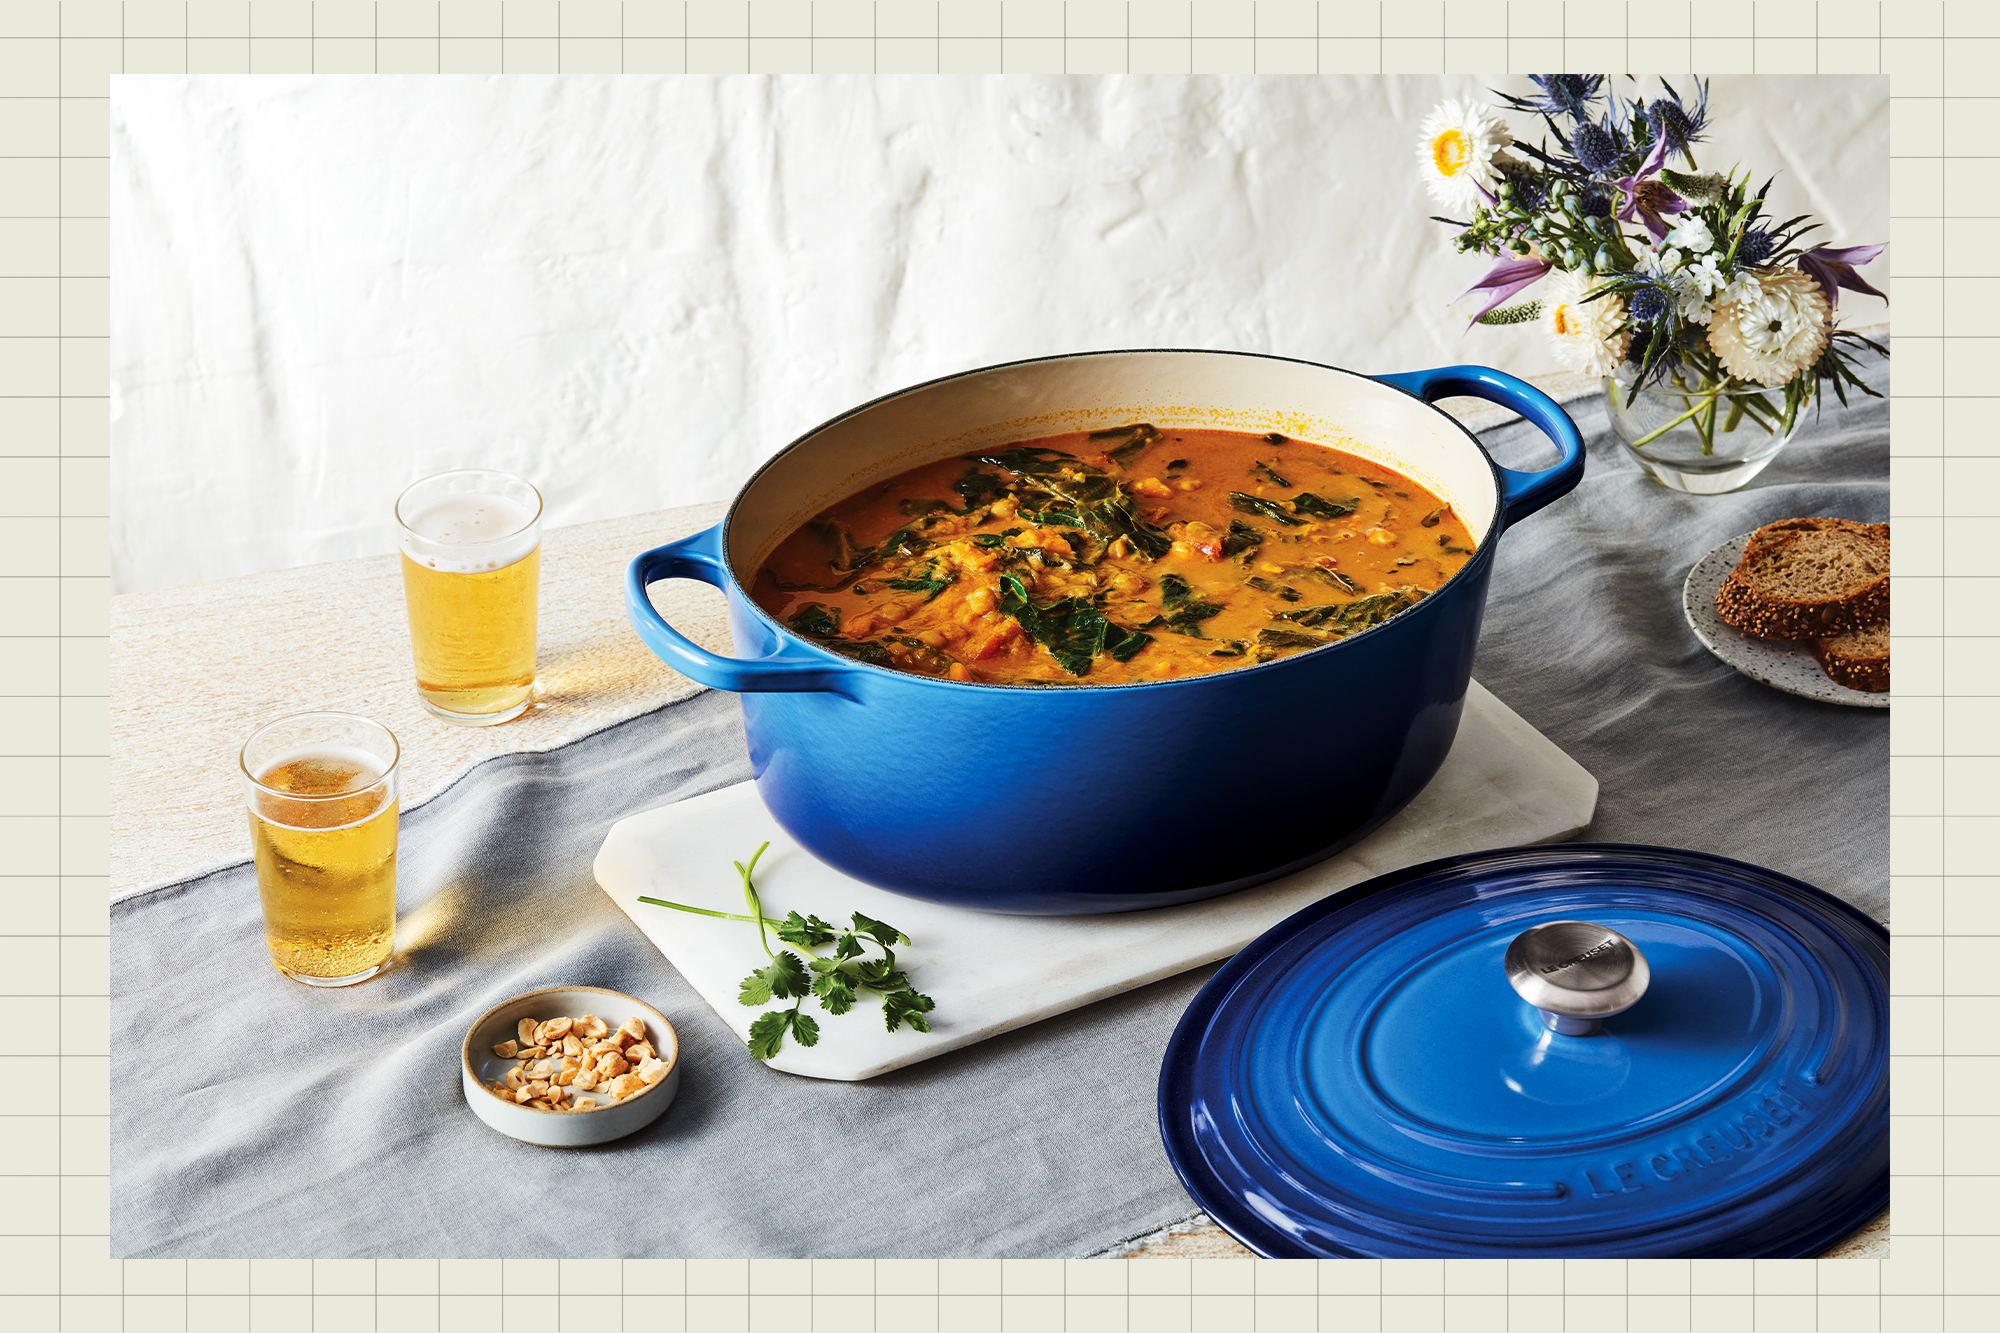 Le Creuset dutch oven on a table with soup in it